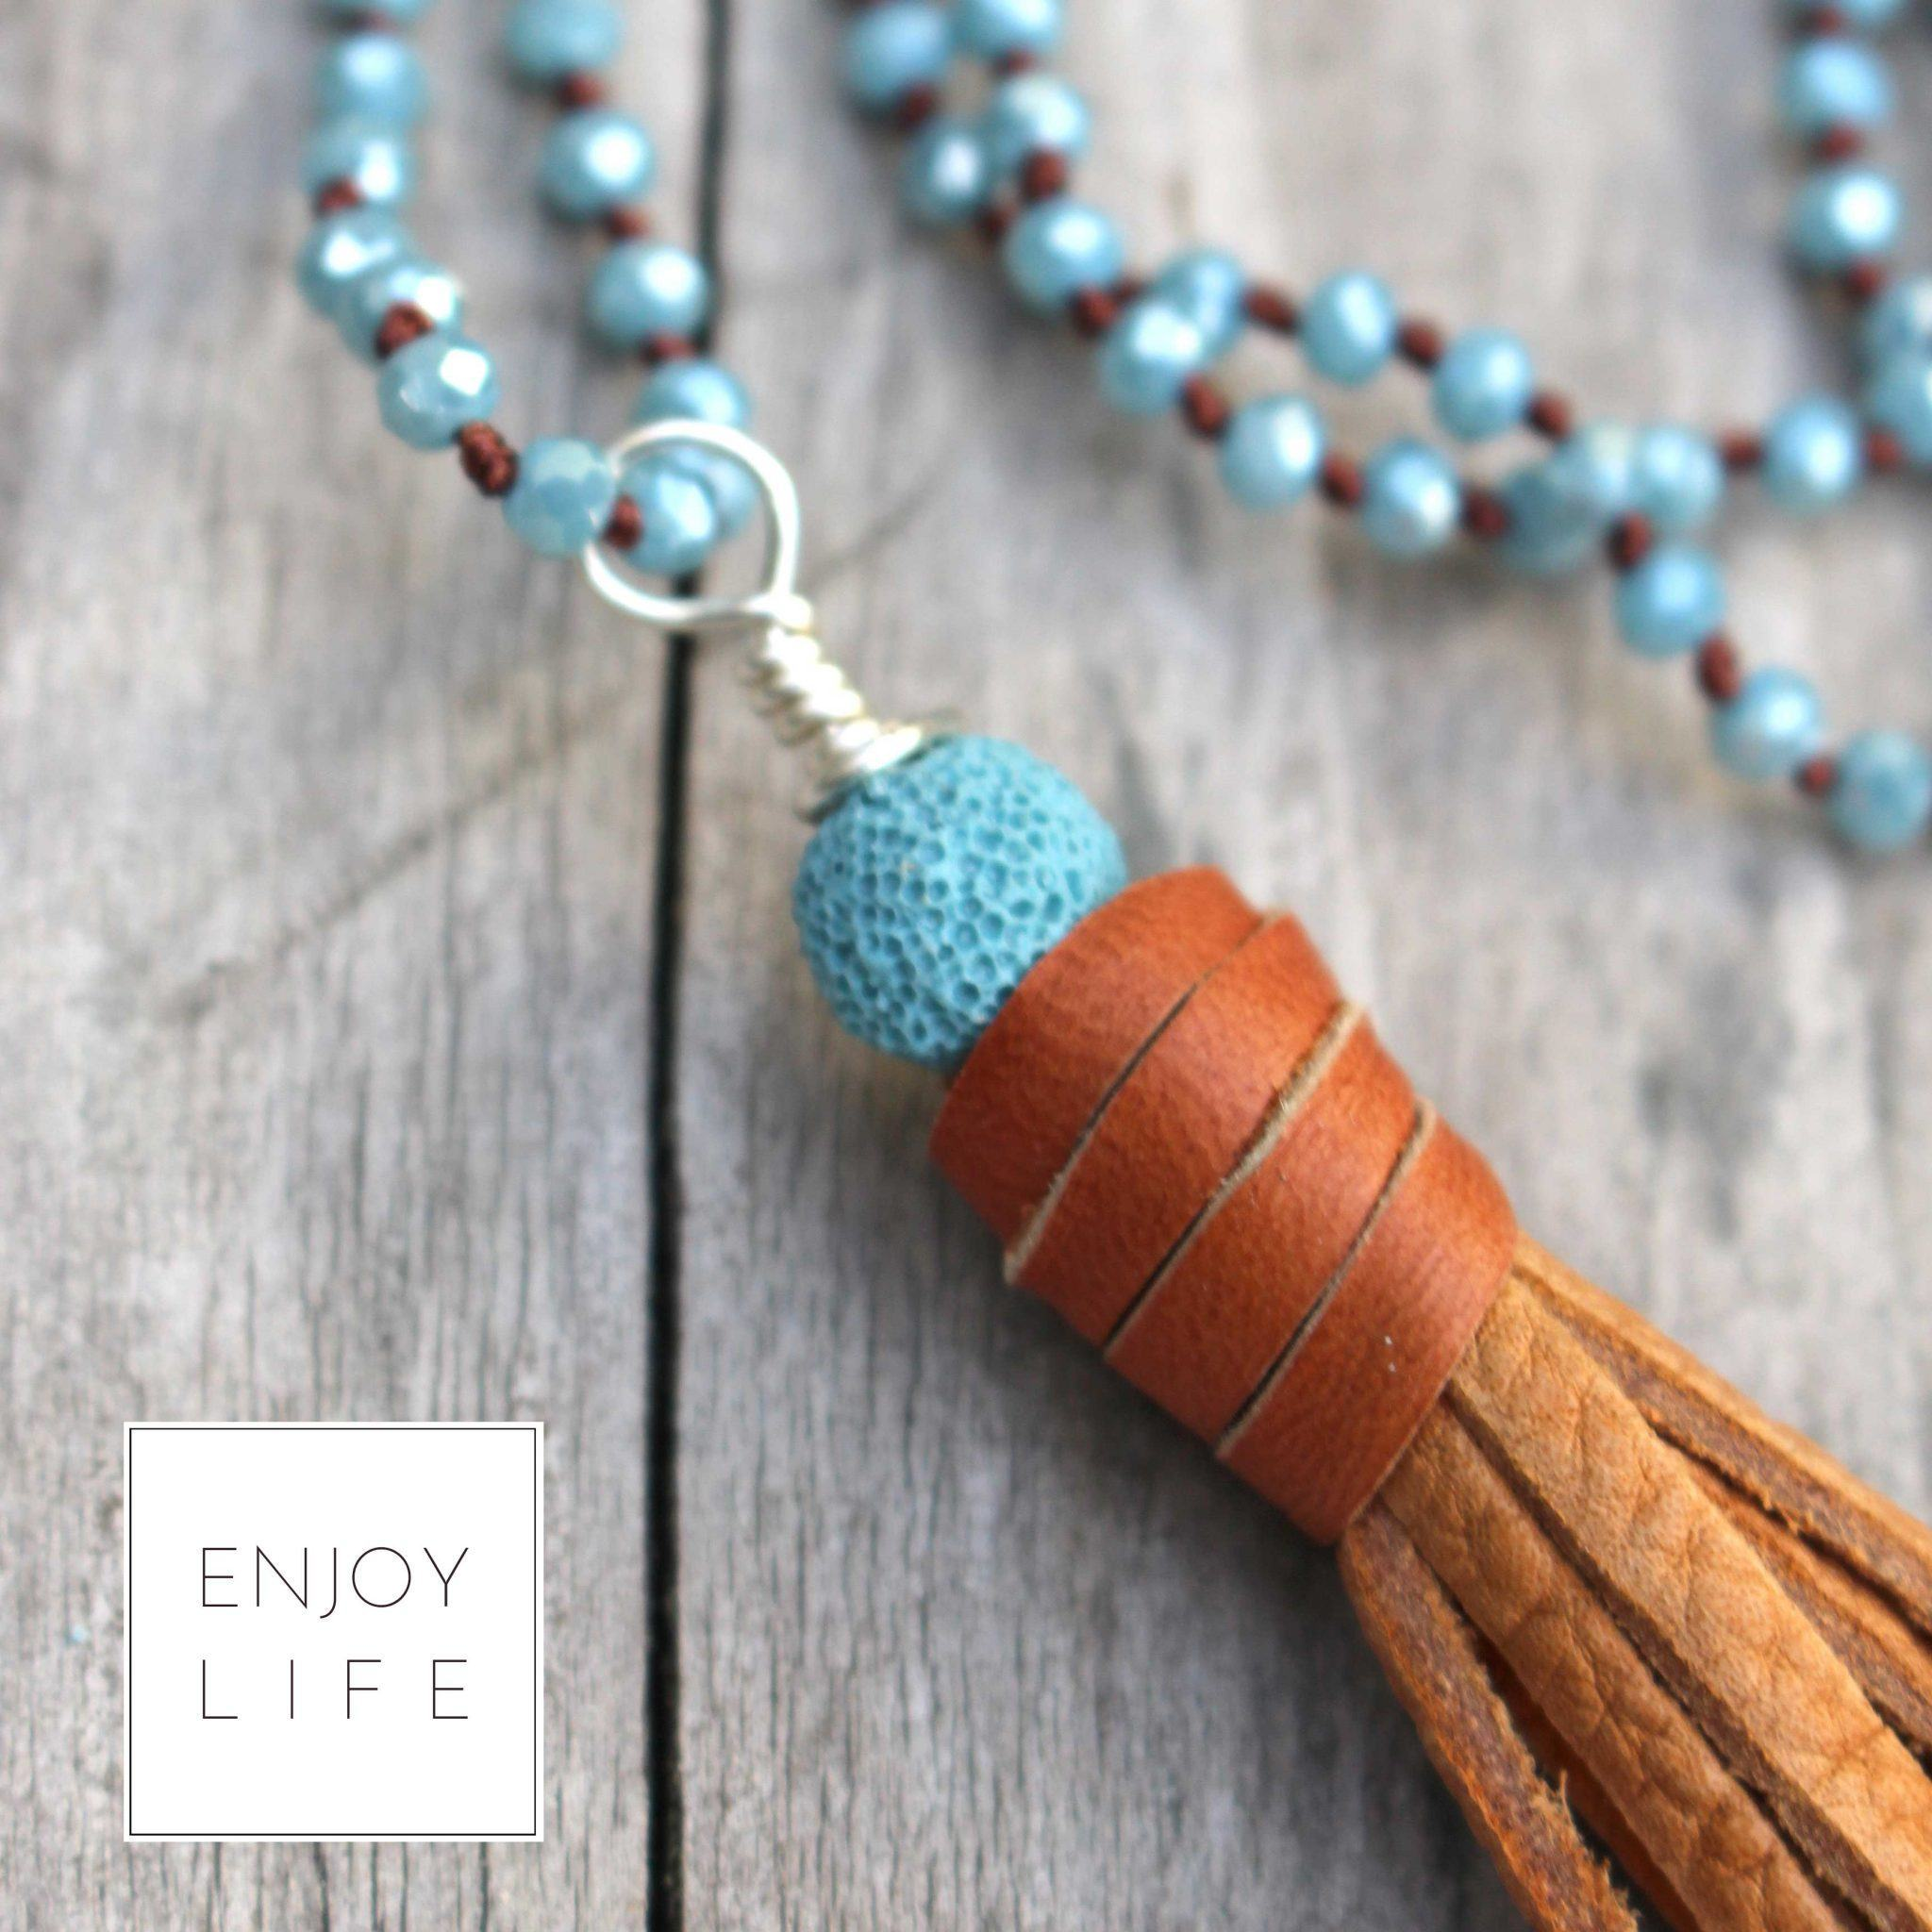 Bohemian Chic diffuser jewelry collection from @skimbaco